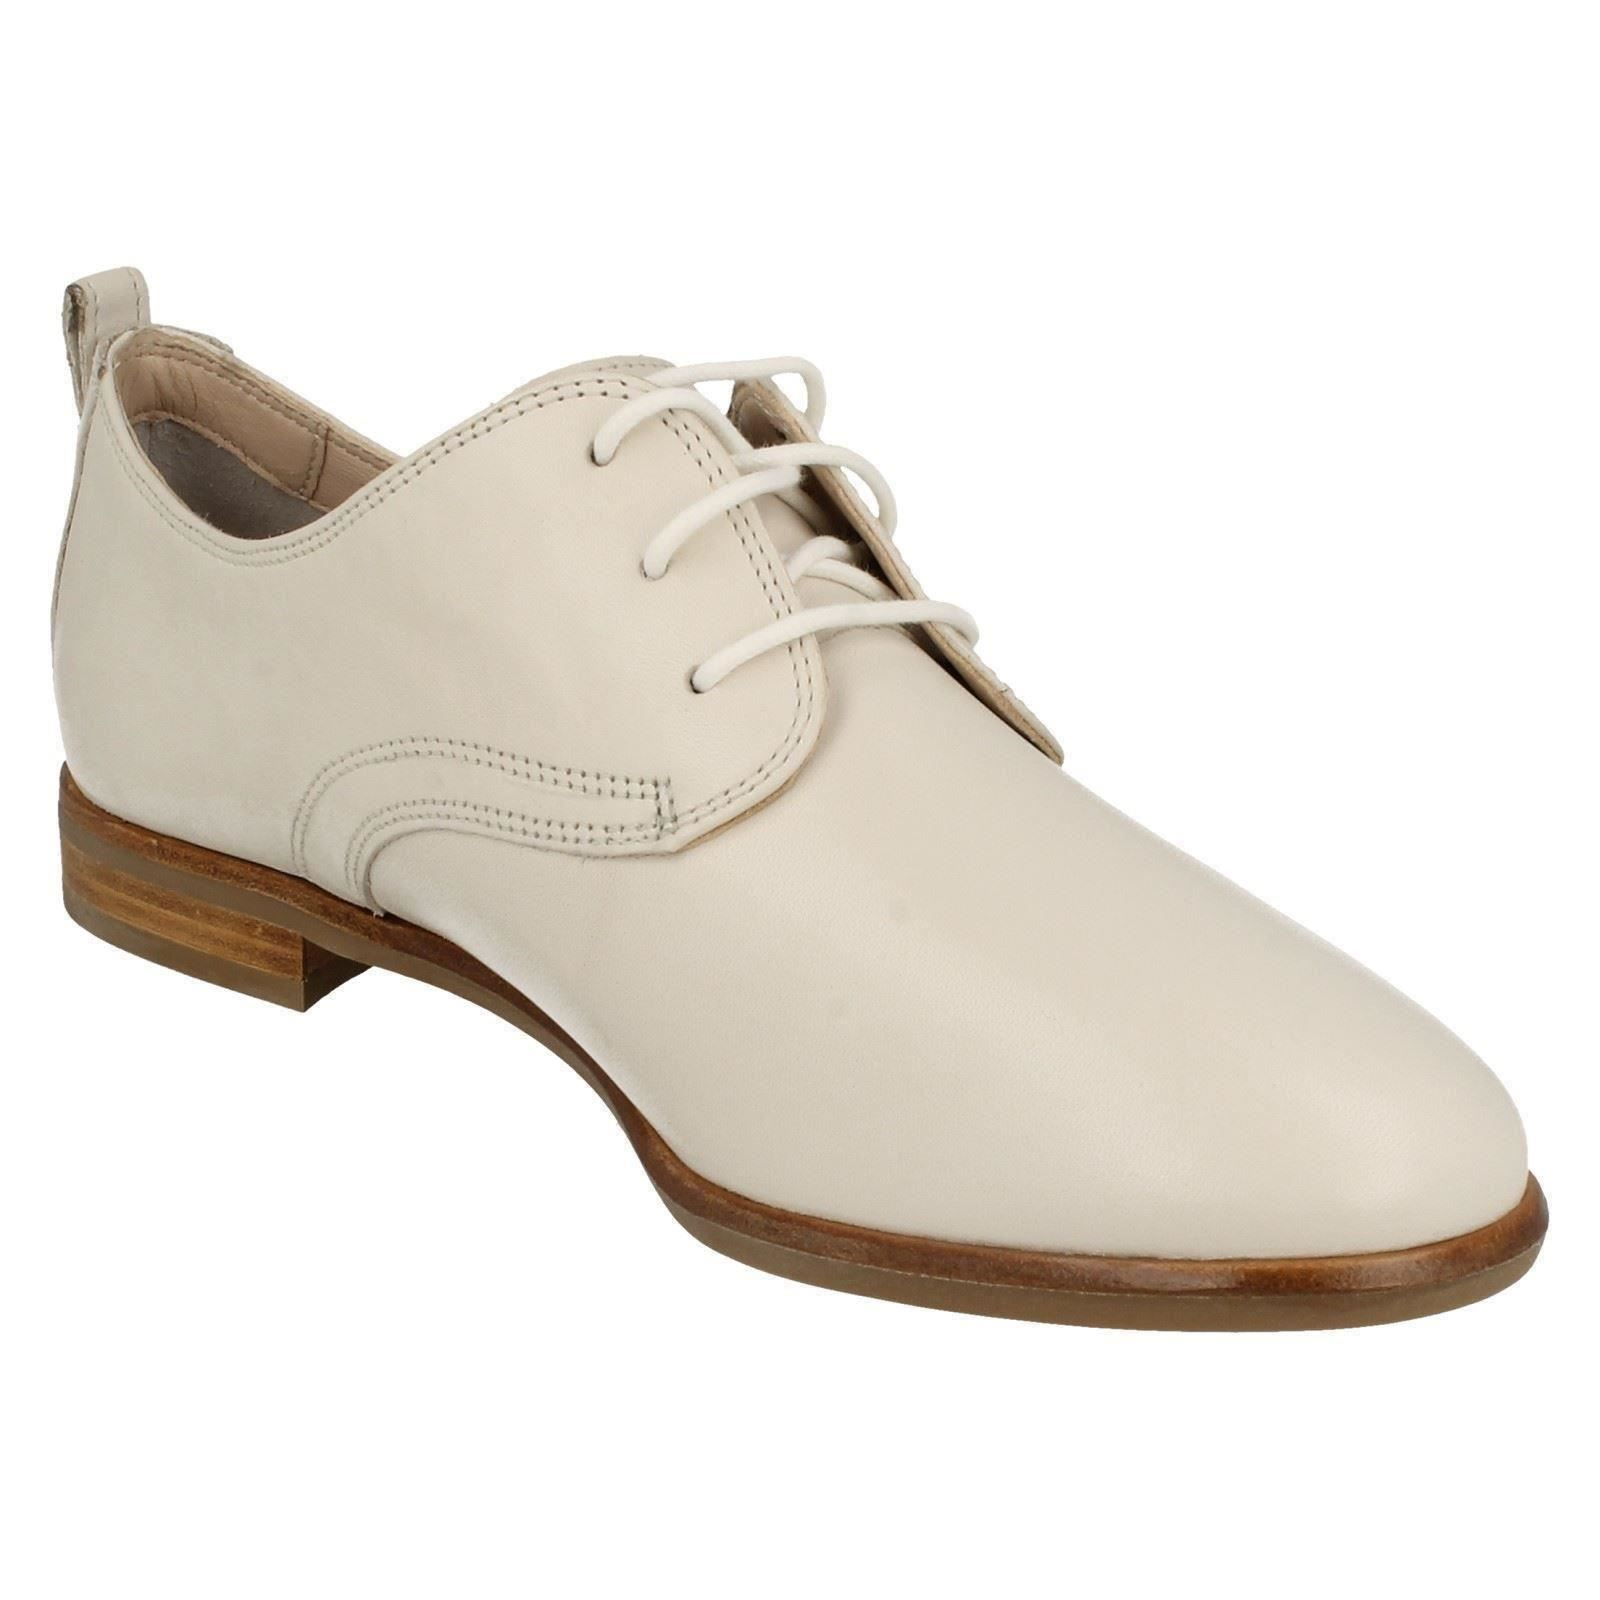 Ladies Clarks Lace Up Casual Shoes *Alania Posey*